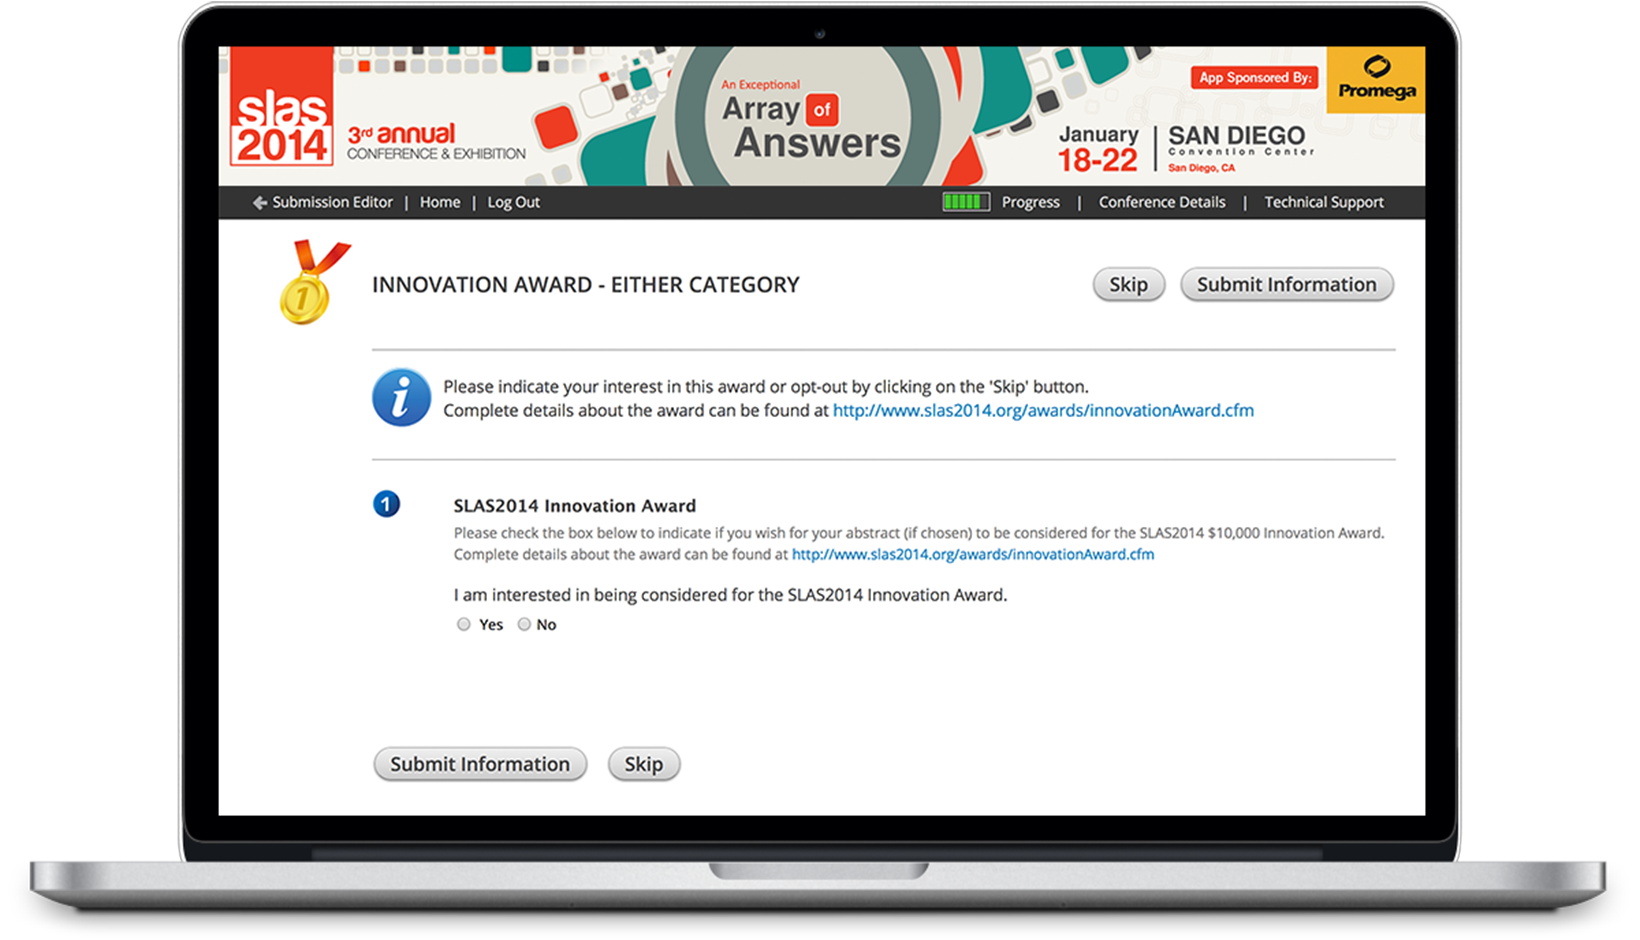 Reviewing awards to present during a conference or meeting has never been easier. Choose the best speakers and presenters at your event with the Abstract Scorecard.